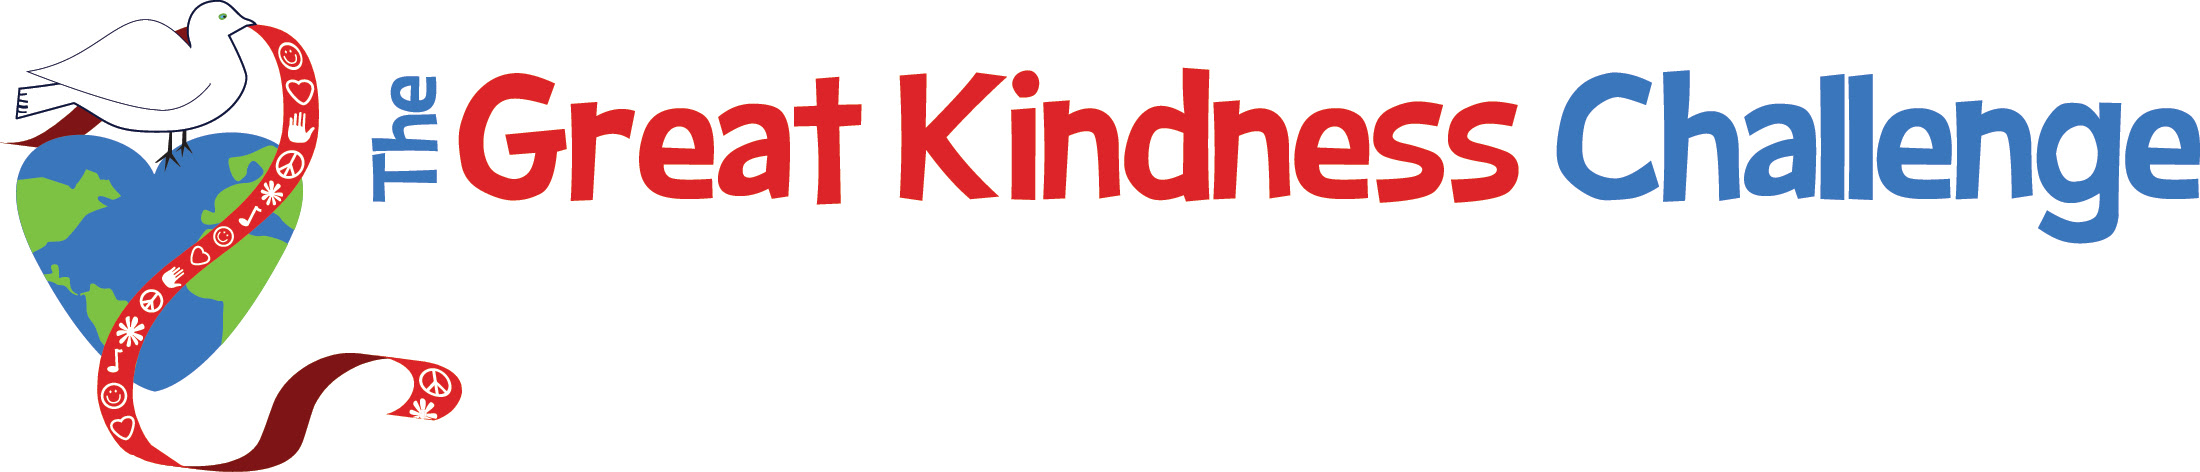 Great Kindness Challenge pic